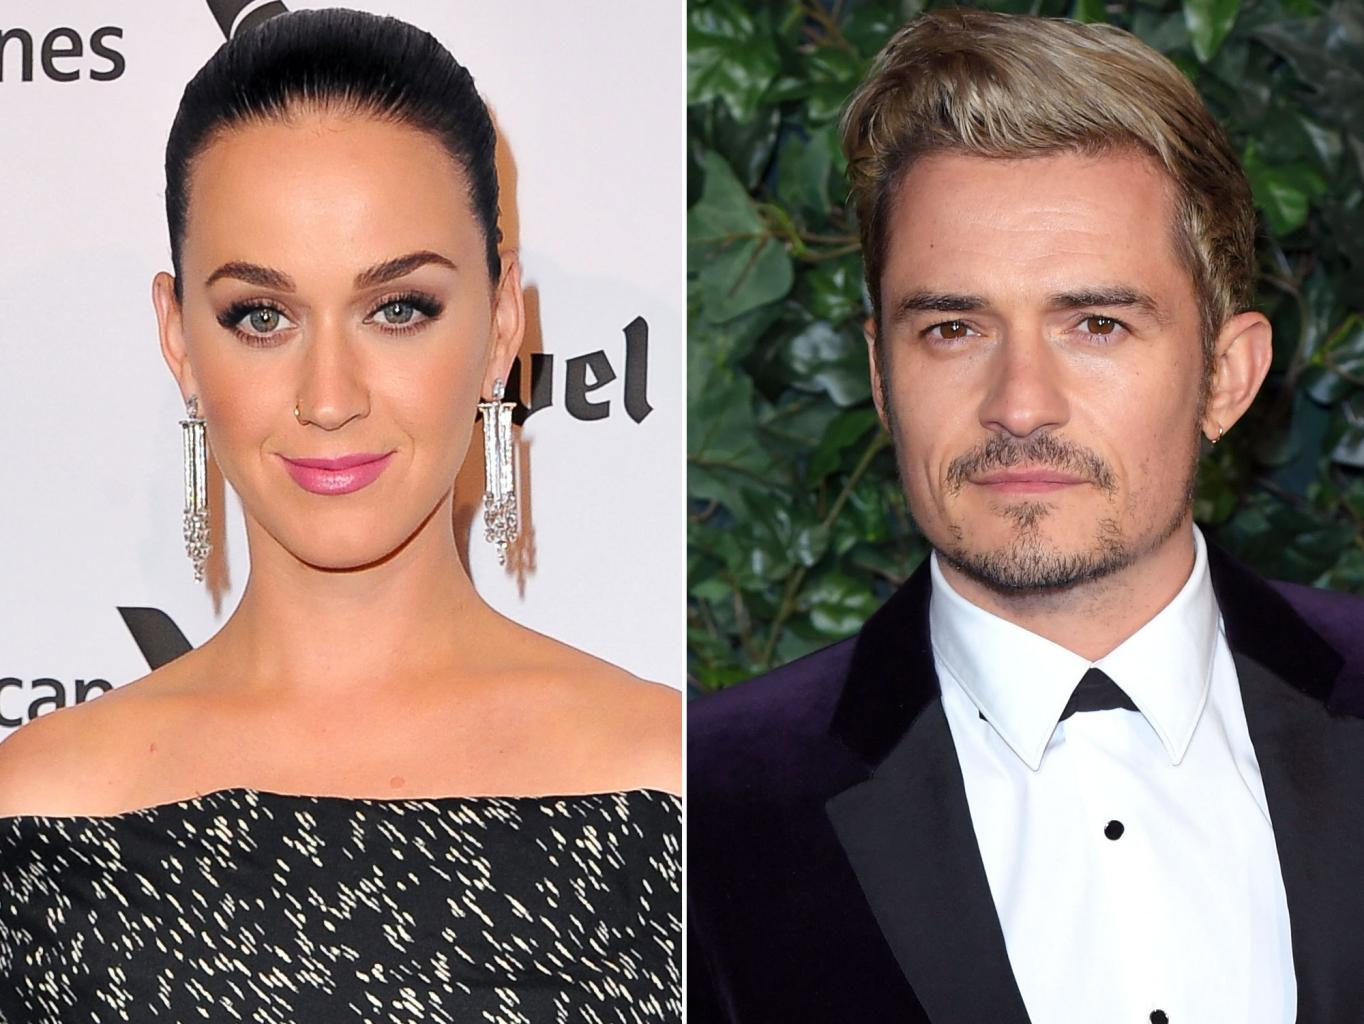 Katy Perry Breaks Silence on Split from Orlando Bloom: 'No One's a Victim or a Villain'